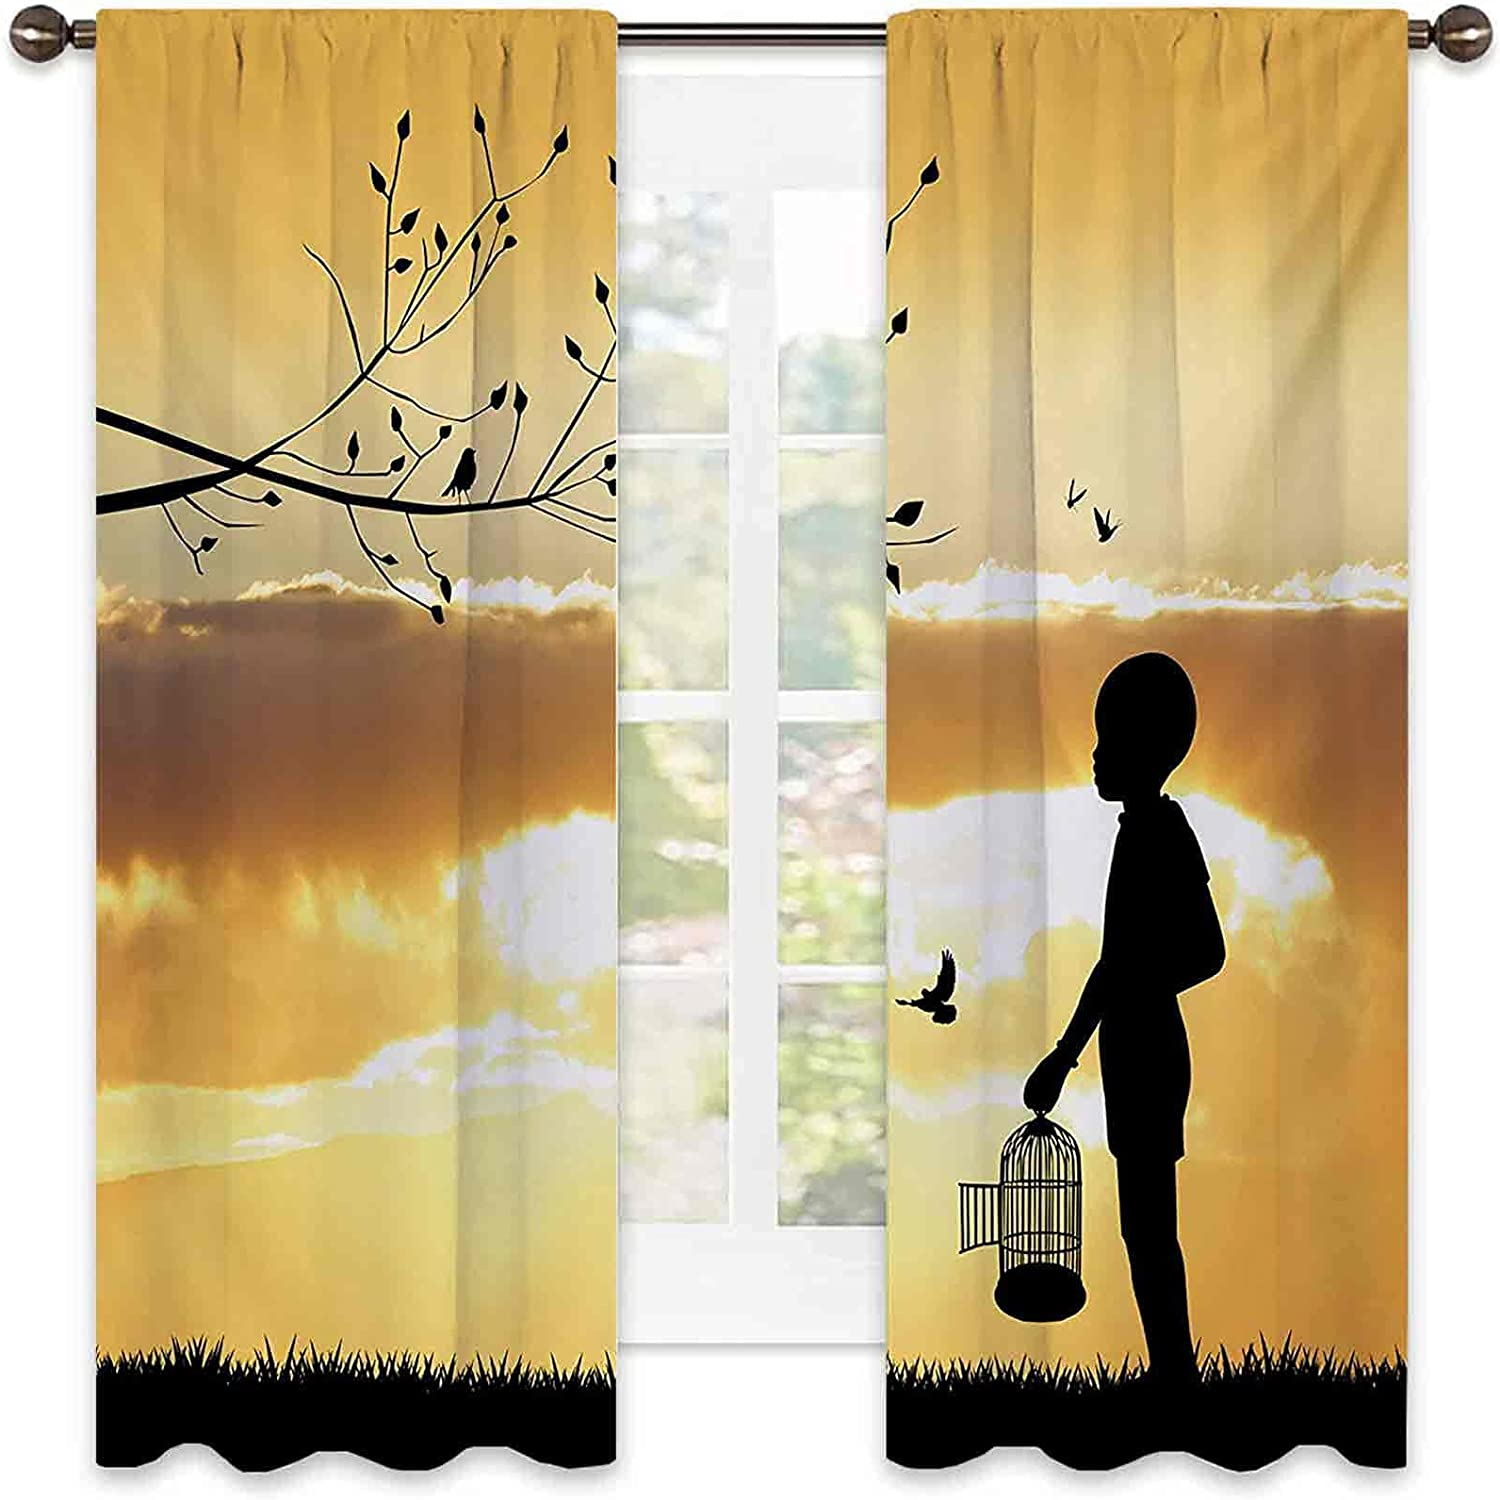 Heat Insulation Quality inspection Nature Curtain Little Child with Silhouette B Max 42% OFF a